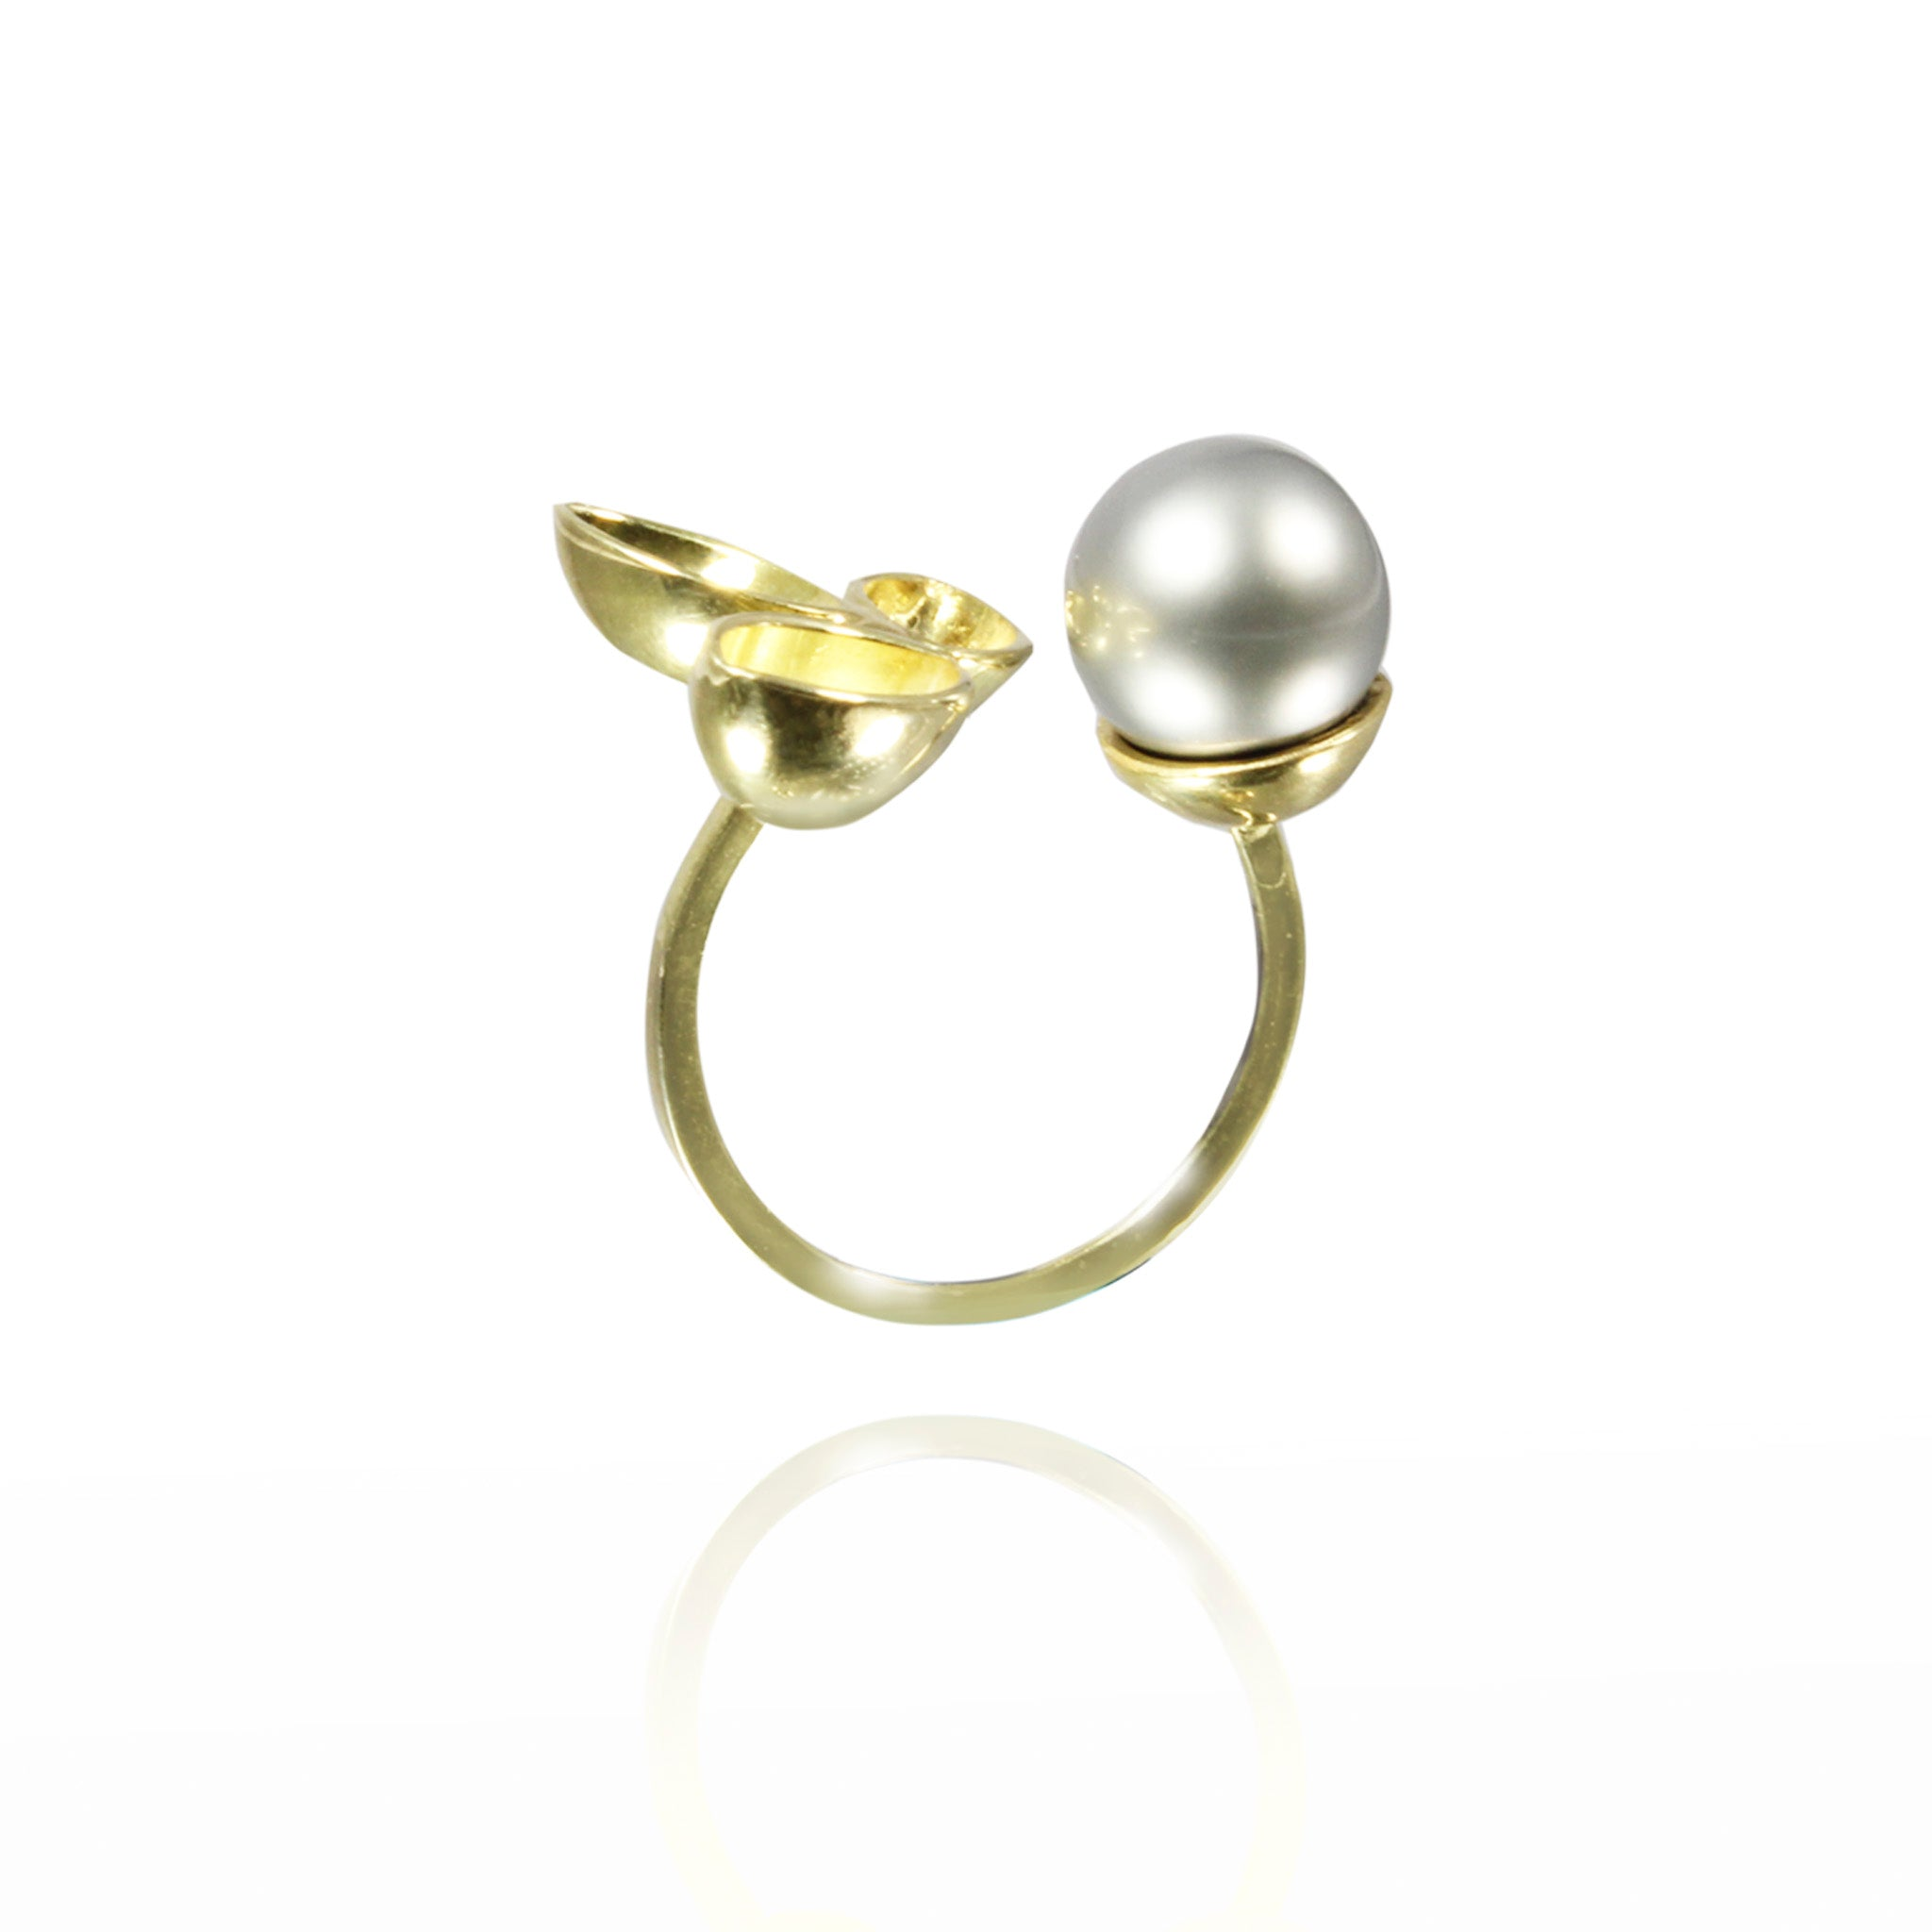 18k yellow gold ring with south sea pearl.